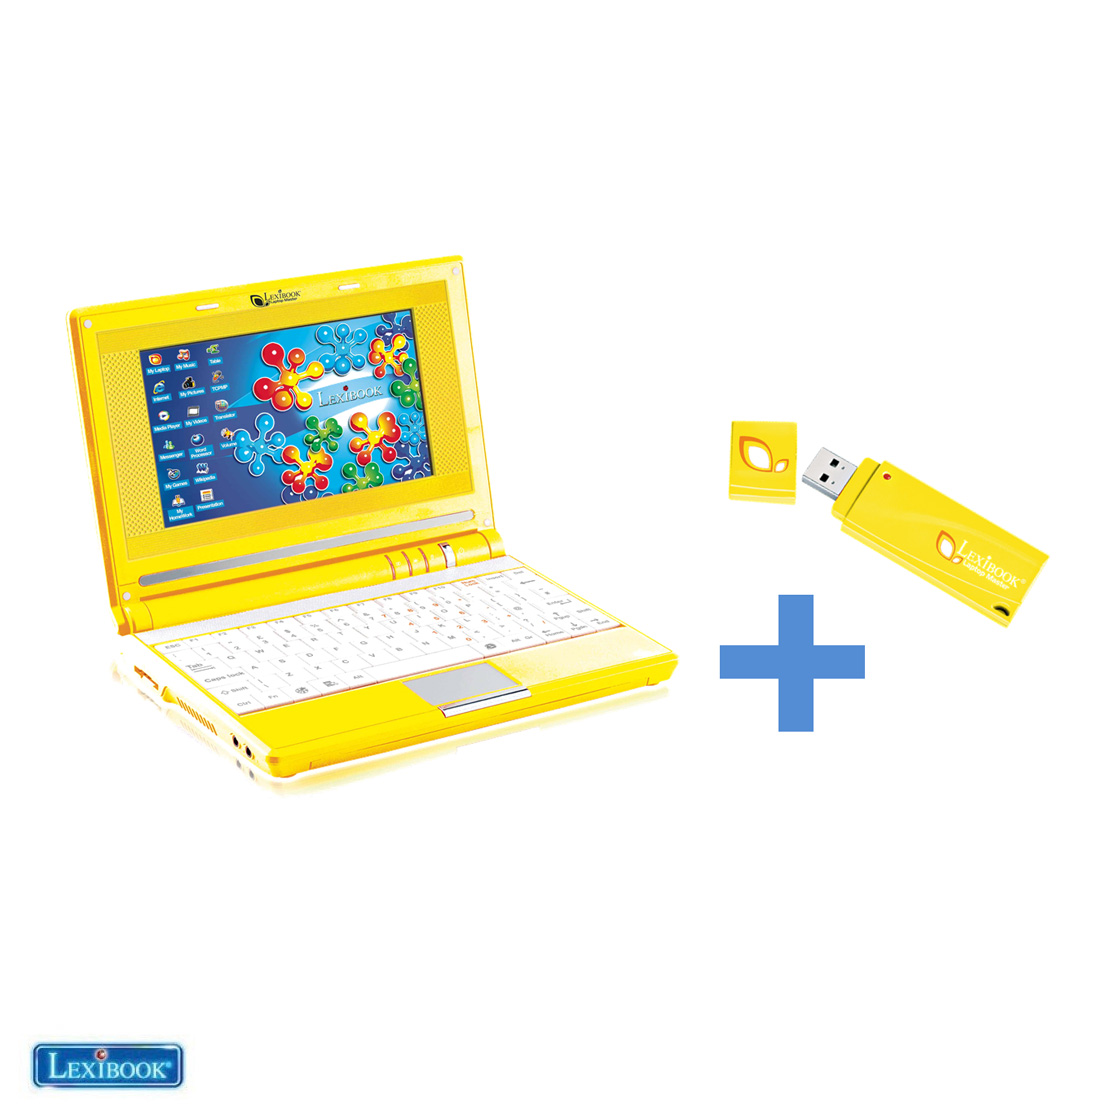 Lexibook® Laptop Master_product_product_product_product